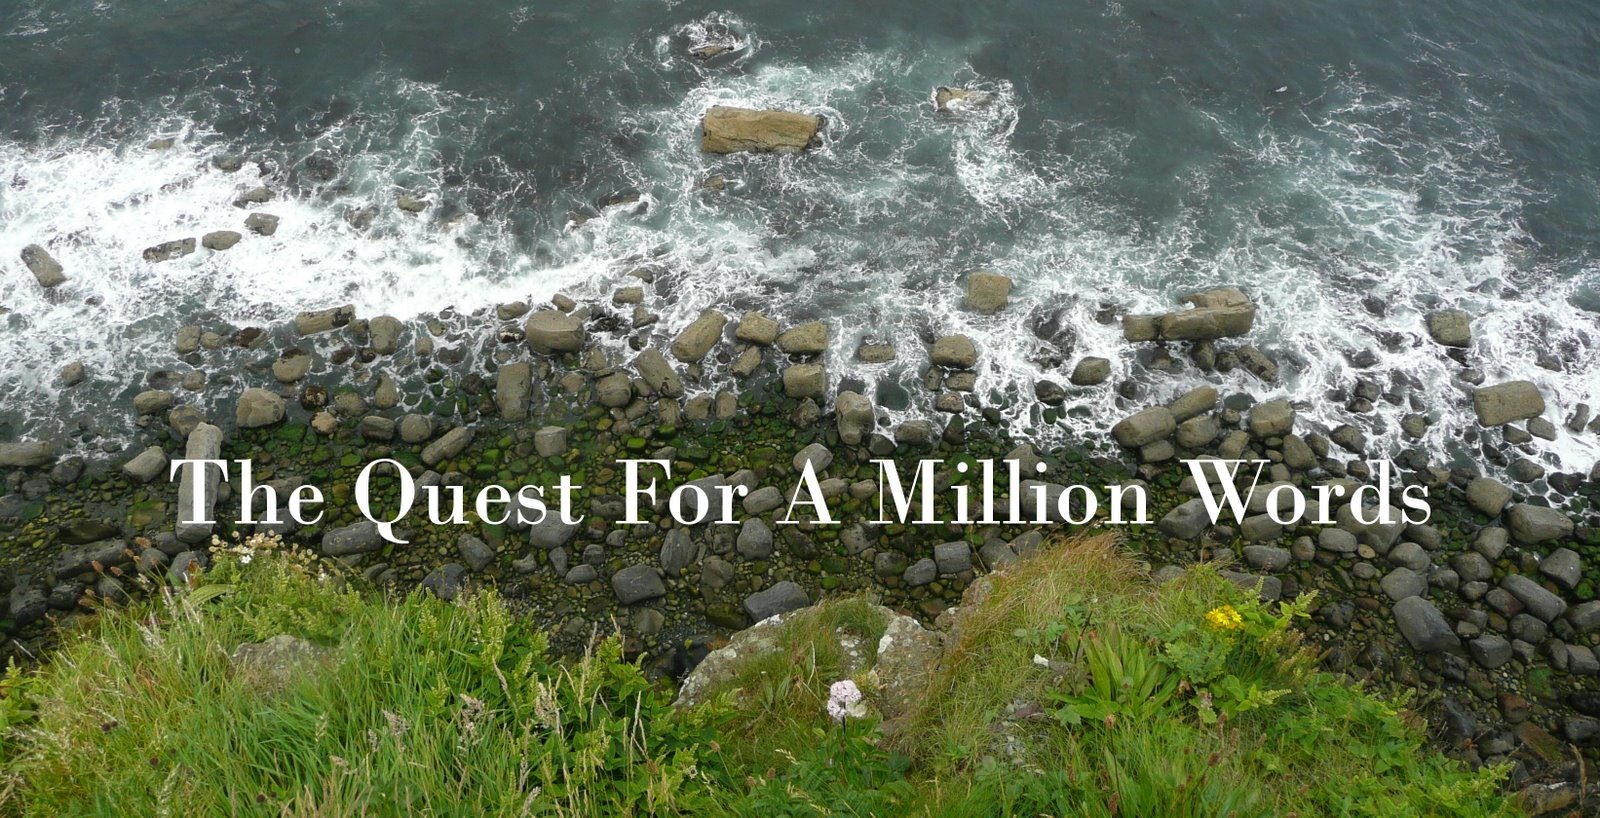 The Quest for a Million Words